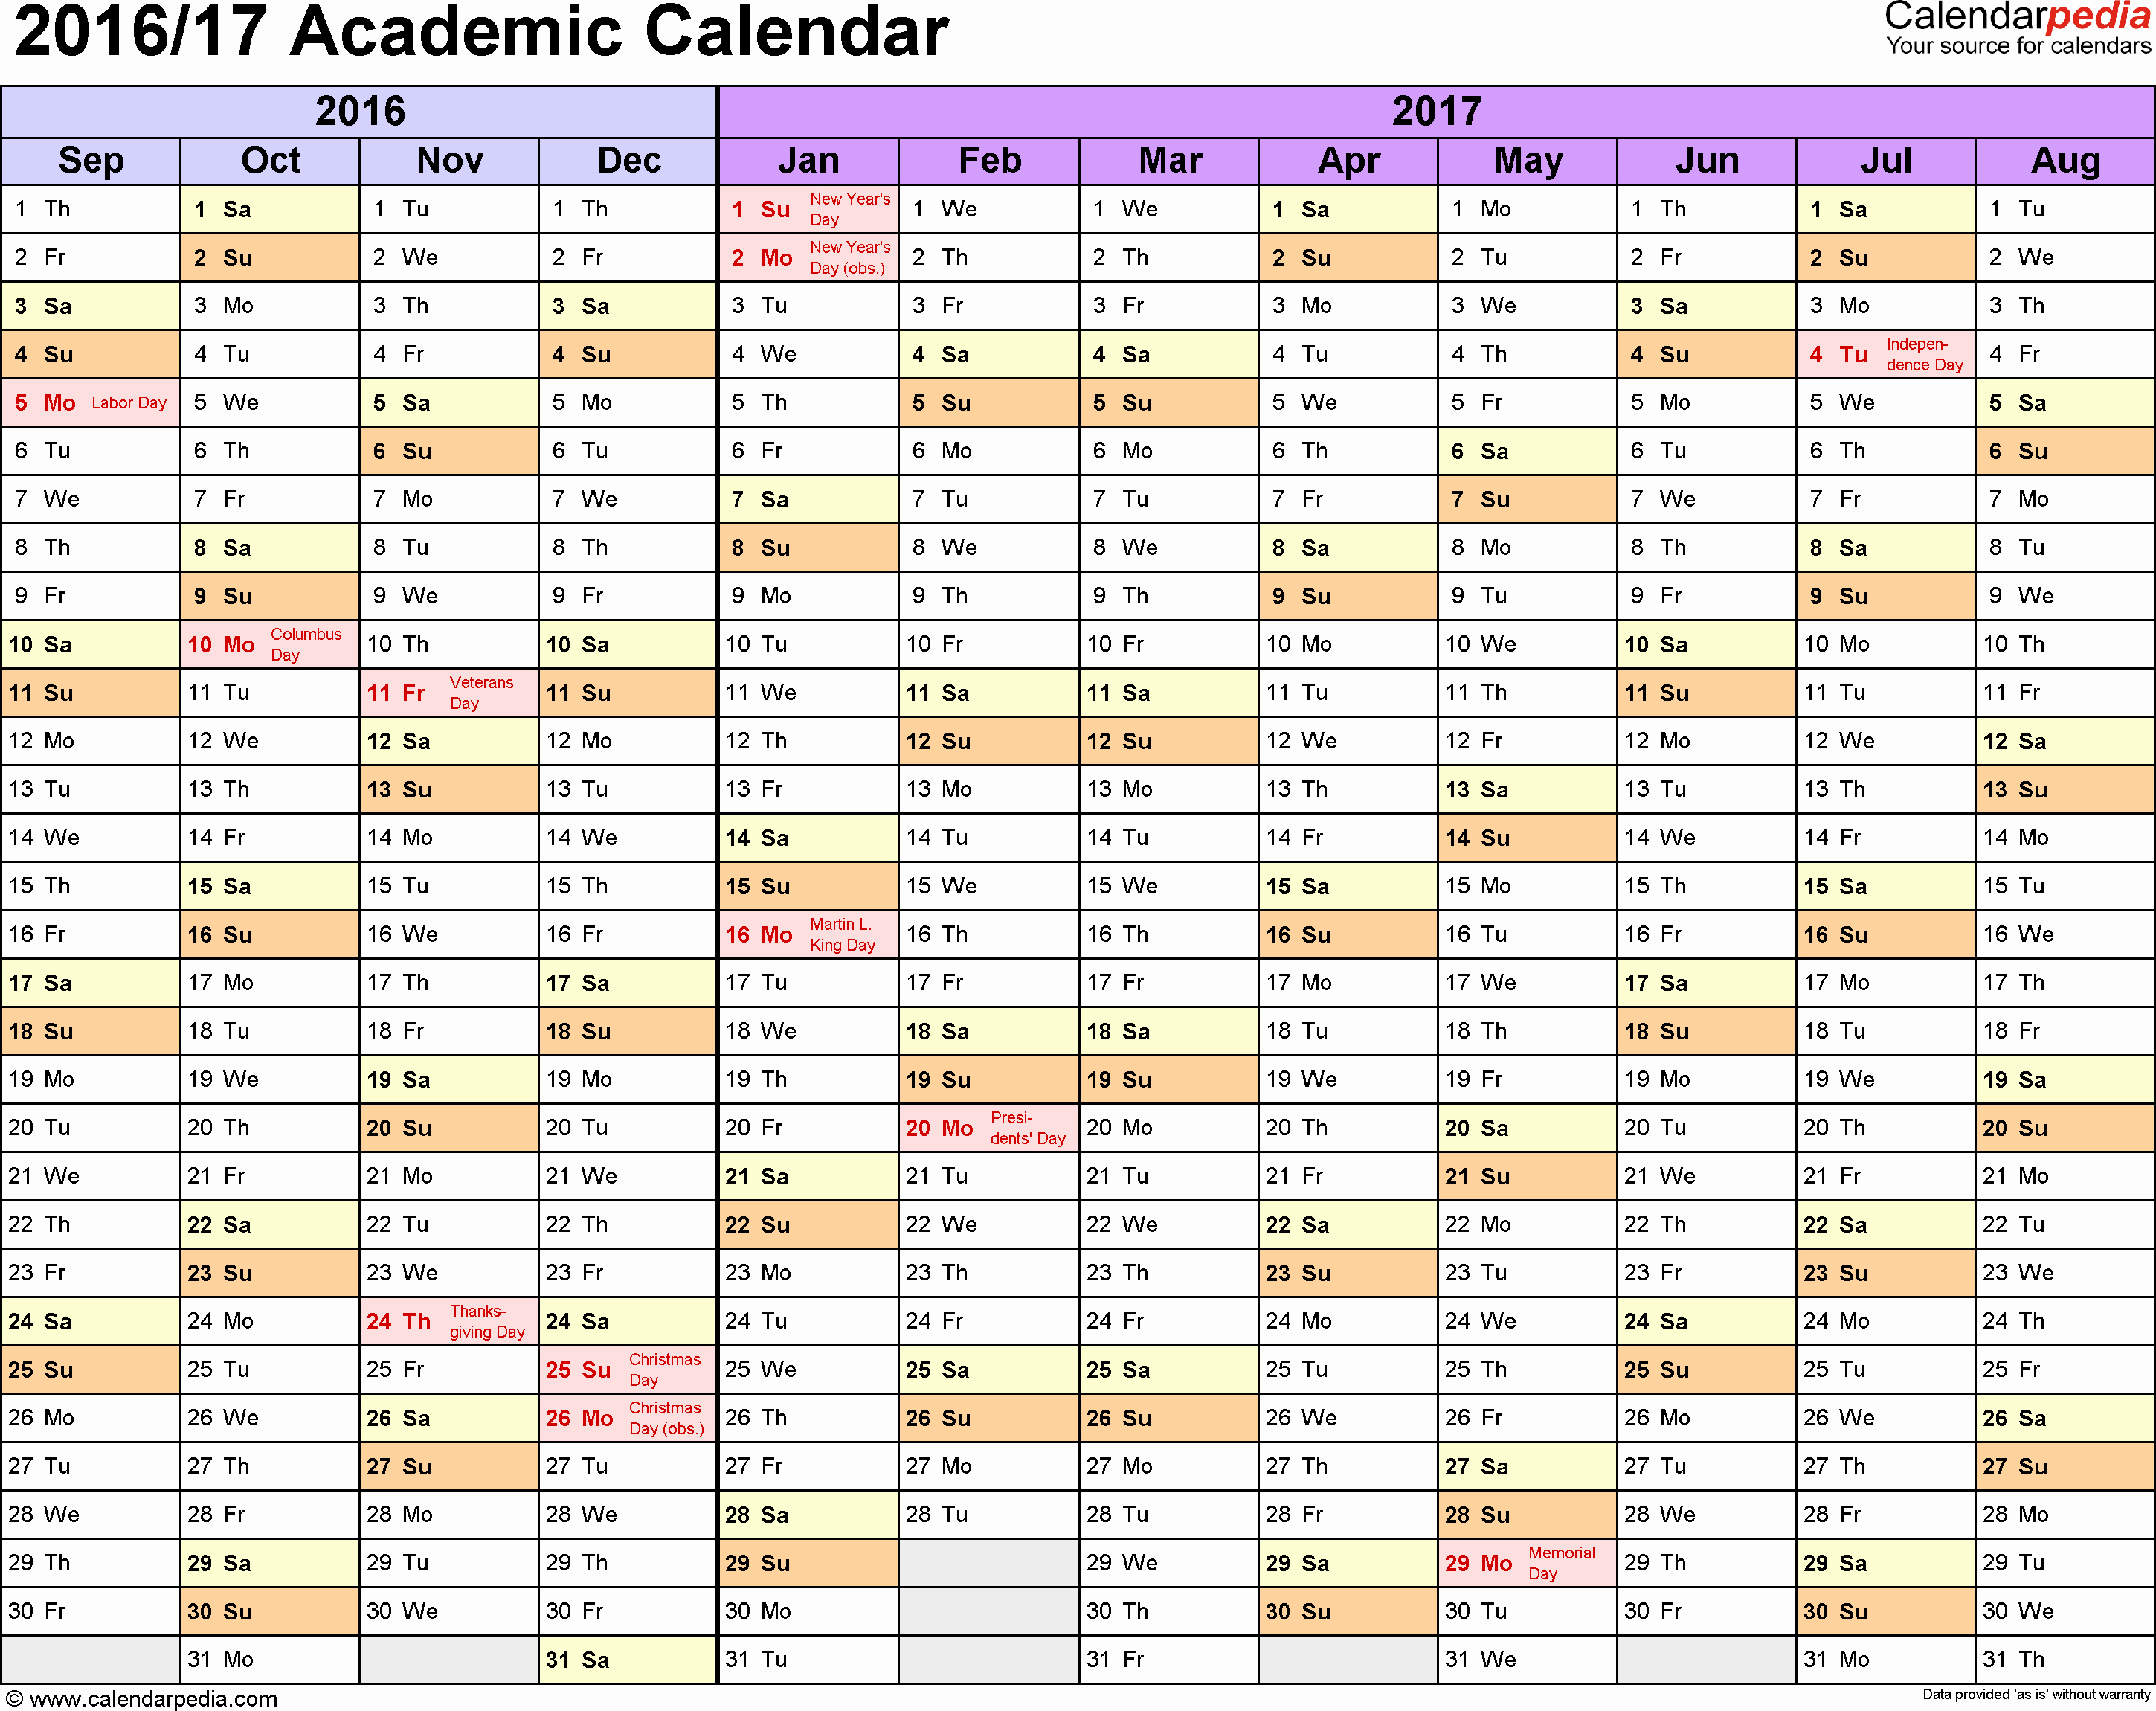 Blank Calendar 2016-17 Awesome Academic Calendars 2016 2017 Free Printable Excel Templates